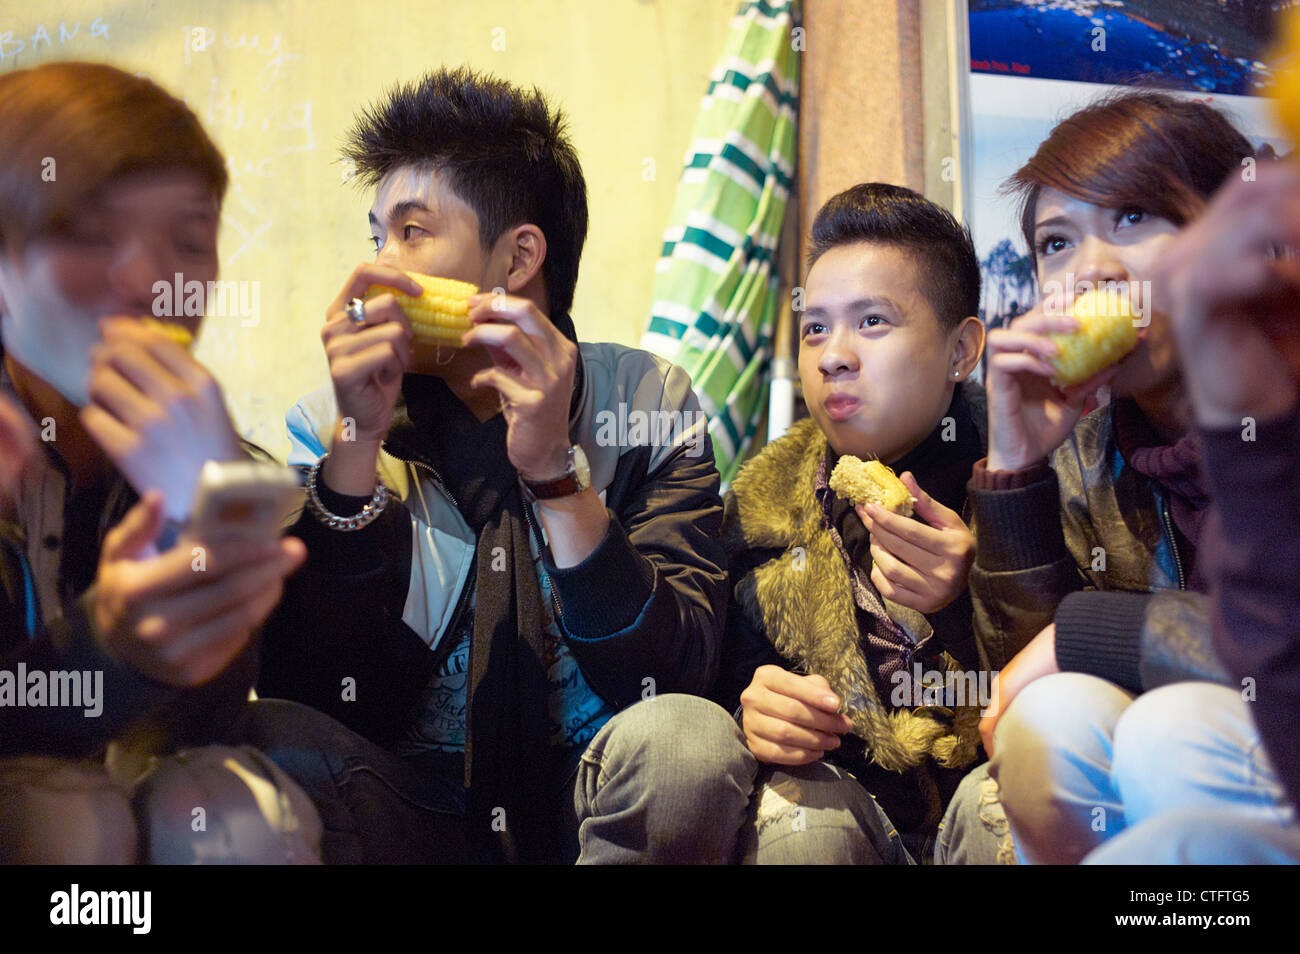 Young adults eating corn on the streets of Vietnam at night. - Stock Image